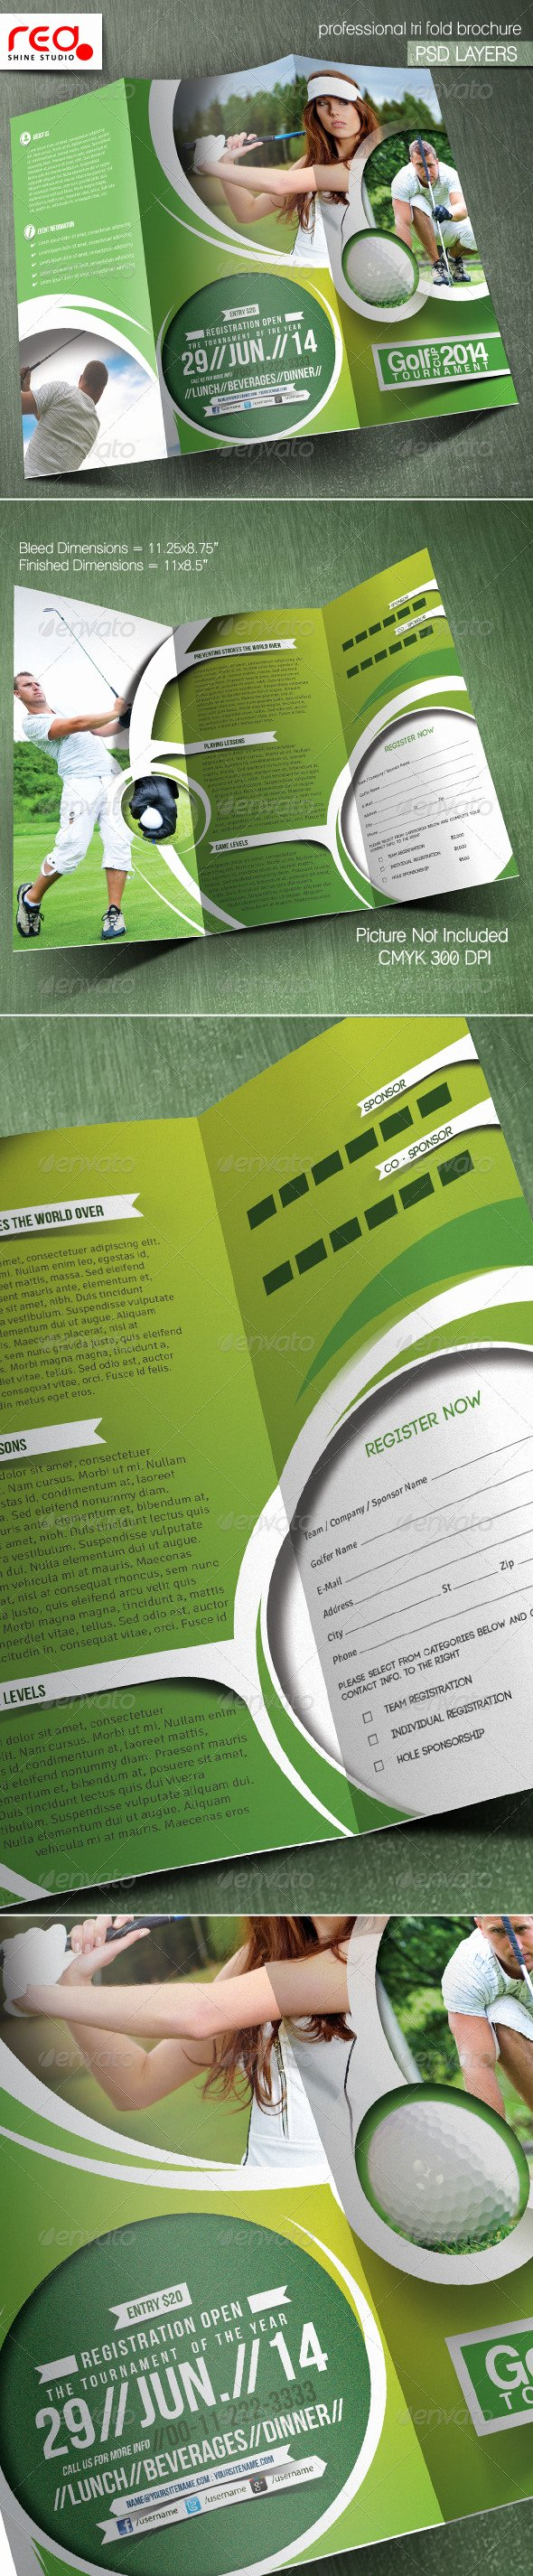 Golf tournament Brochure Template Lovely Golf tournament Trifold Brochure Template